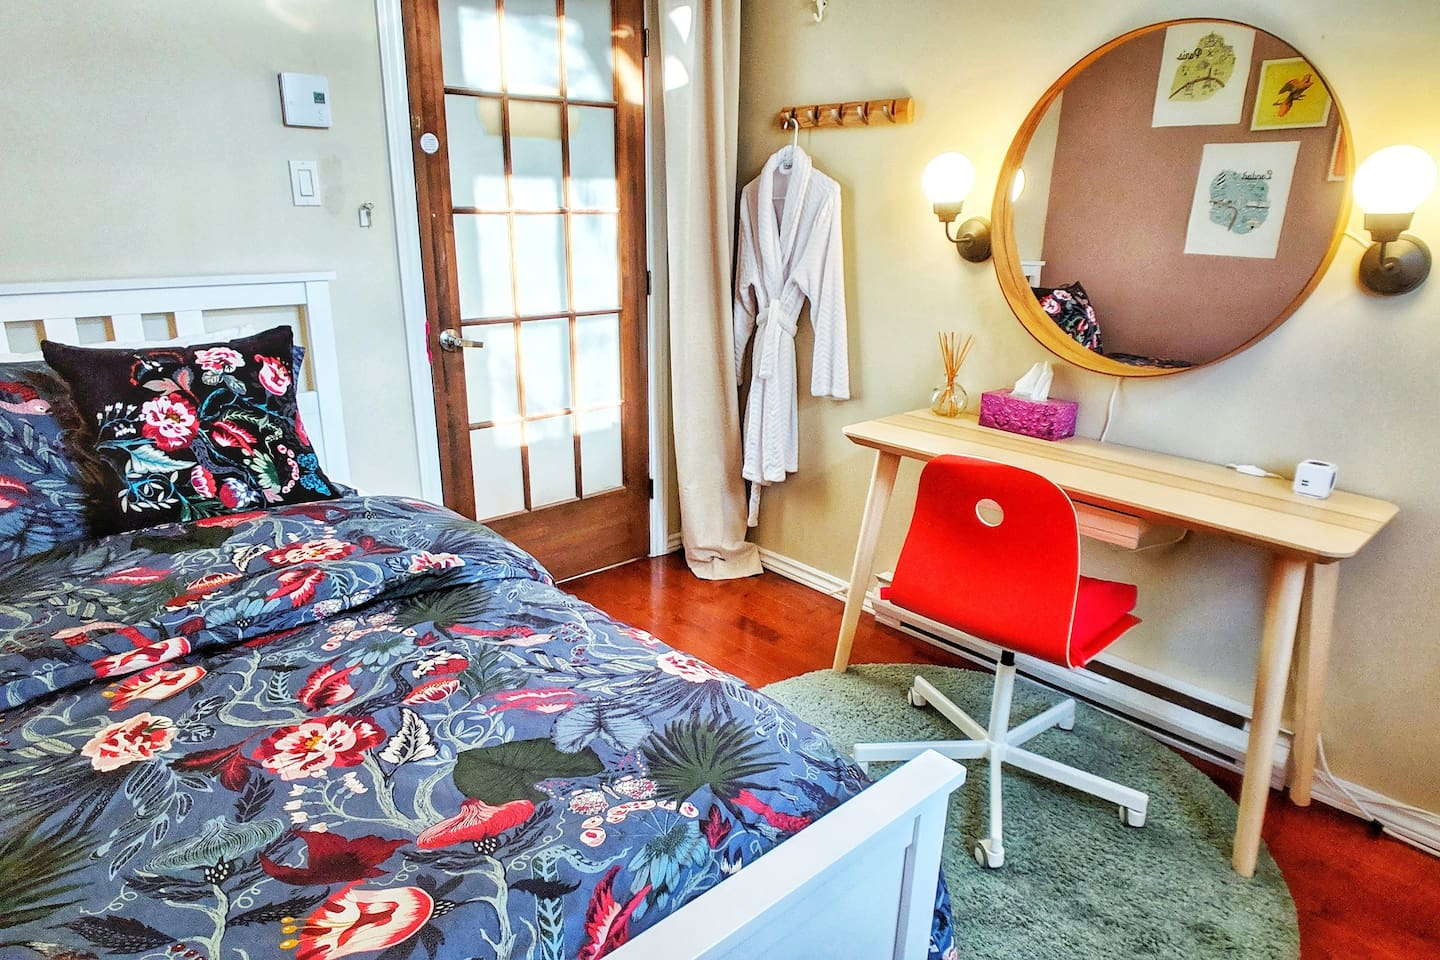 Your wonderfully cozy and traveler thoughtful private room, complete with laptop desk, vanity mirror, USB charging ports, and personal climate control!